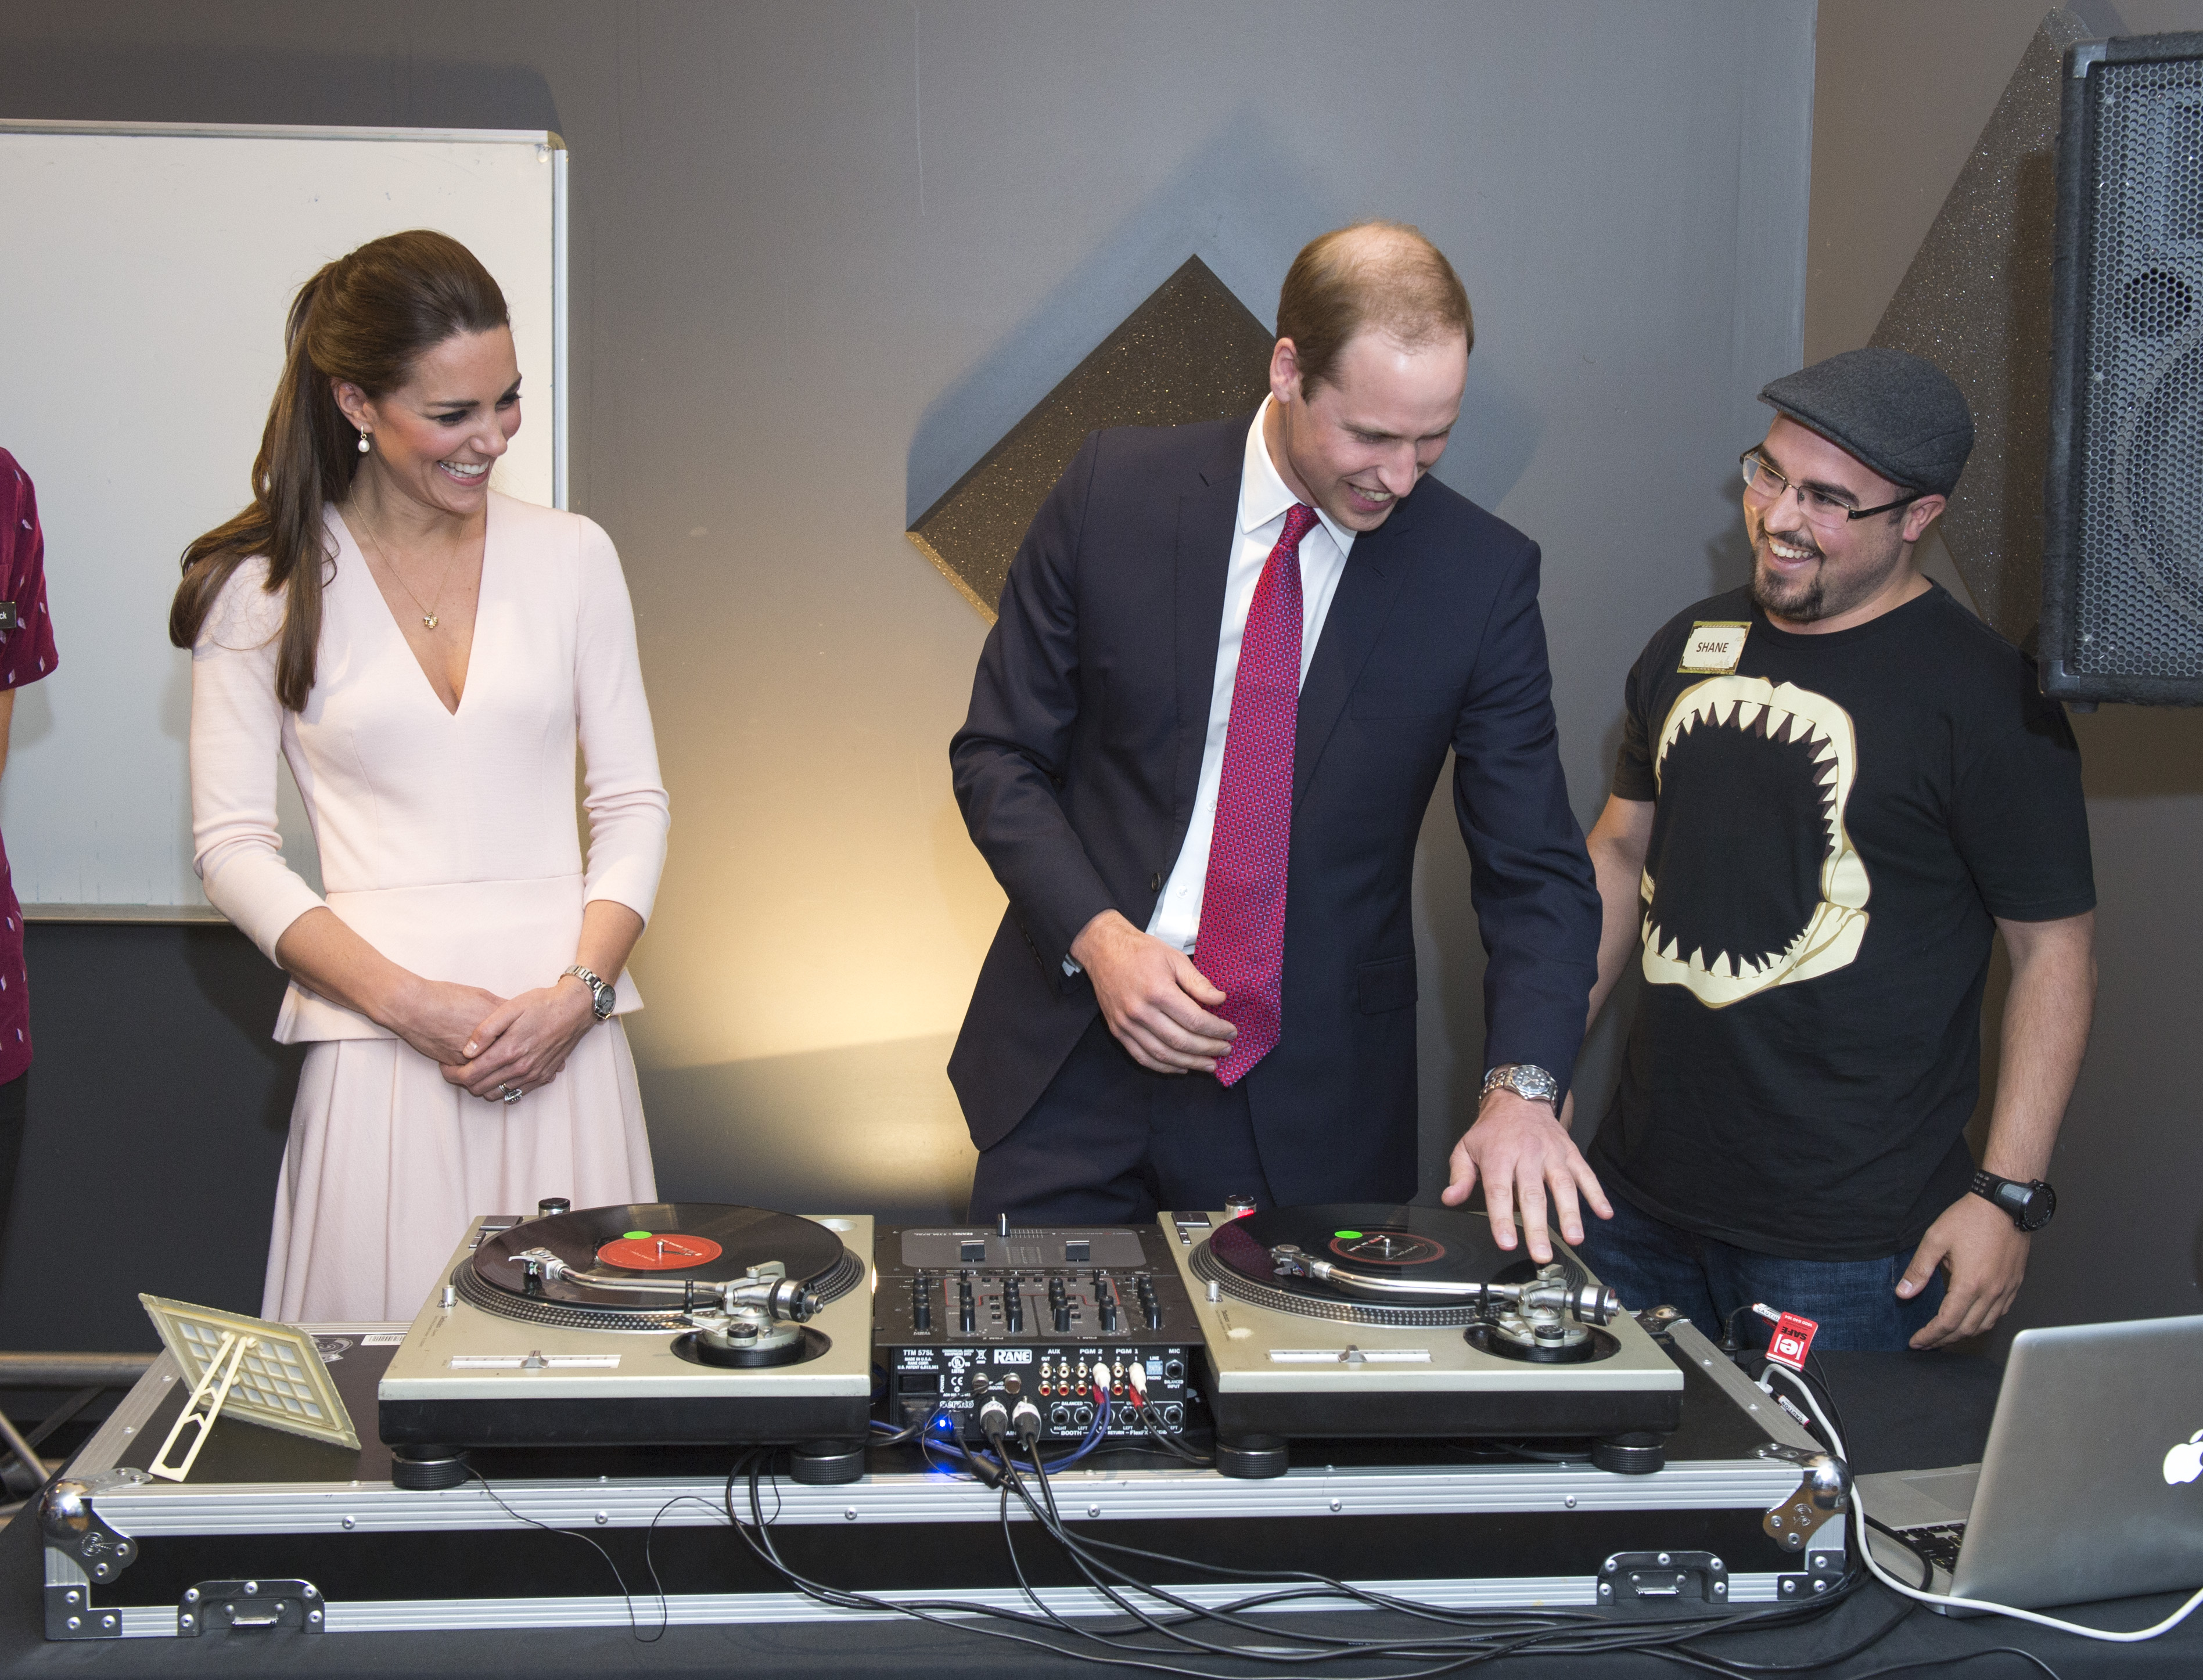 ADELAIDE, AUSTRALIA - APRIL 23:  Catherine, Duchess of Cambridge looks on as Prince William, Duke of Cambridge is shown how to play on DJ decks at the youth community centre, The Northern Sound System in Elizabeth on April 23, 2014 in Adelaide, Australia. The Duke and Duchess of Cambridge are on a three-week tour of Australia and New Zealand, the first official trip overseas with their son, Prince George of Cambridge.  (Photo by Arthur Edwards - Pool/Getty Images)